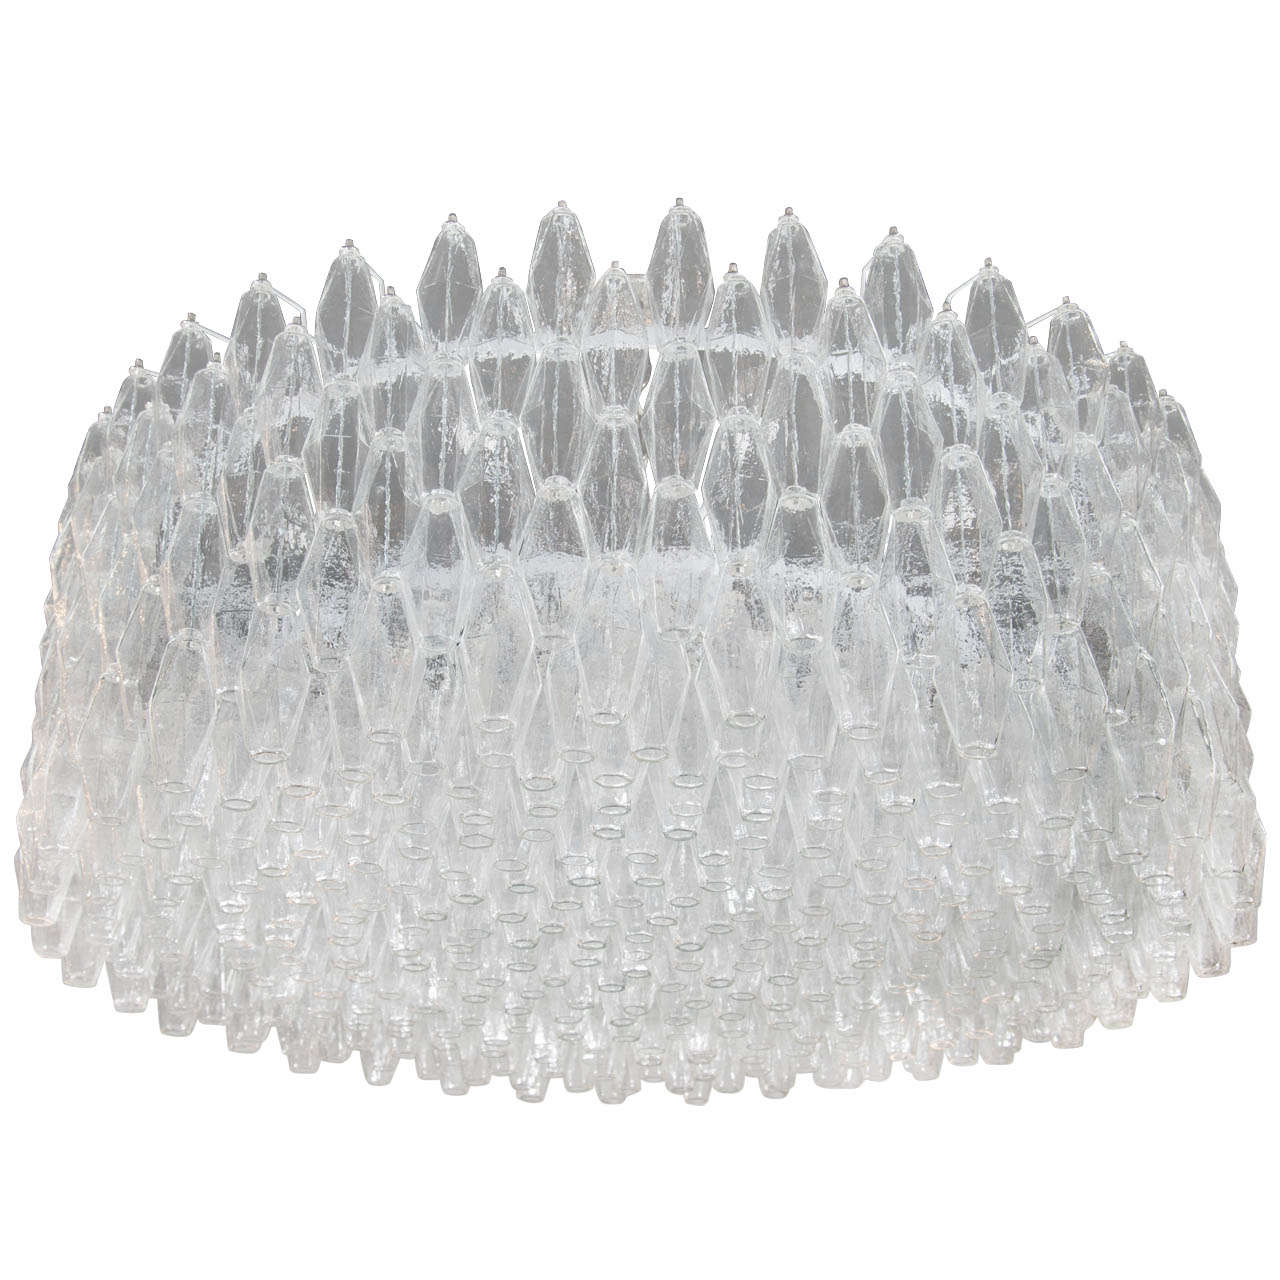 Monumental Handblown Smoked Murano Glass Polyhedral Chandelier by Venini For Sale